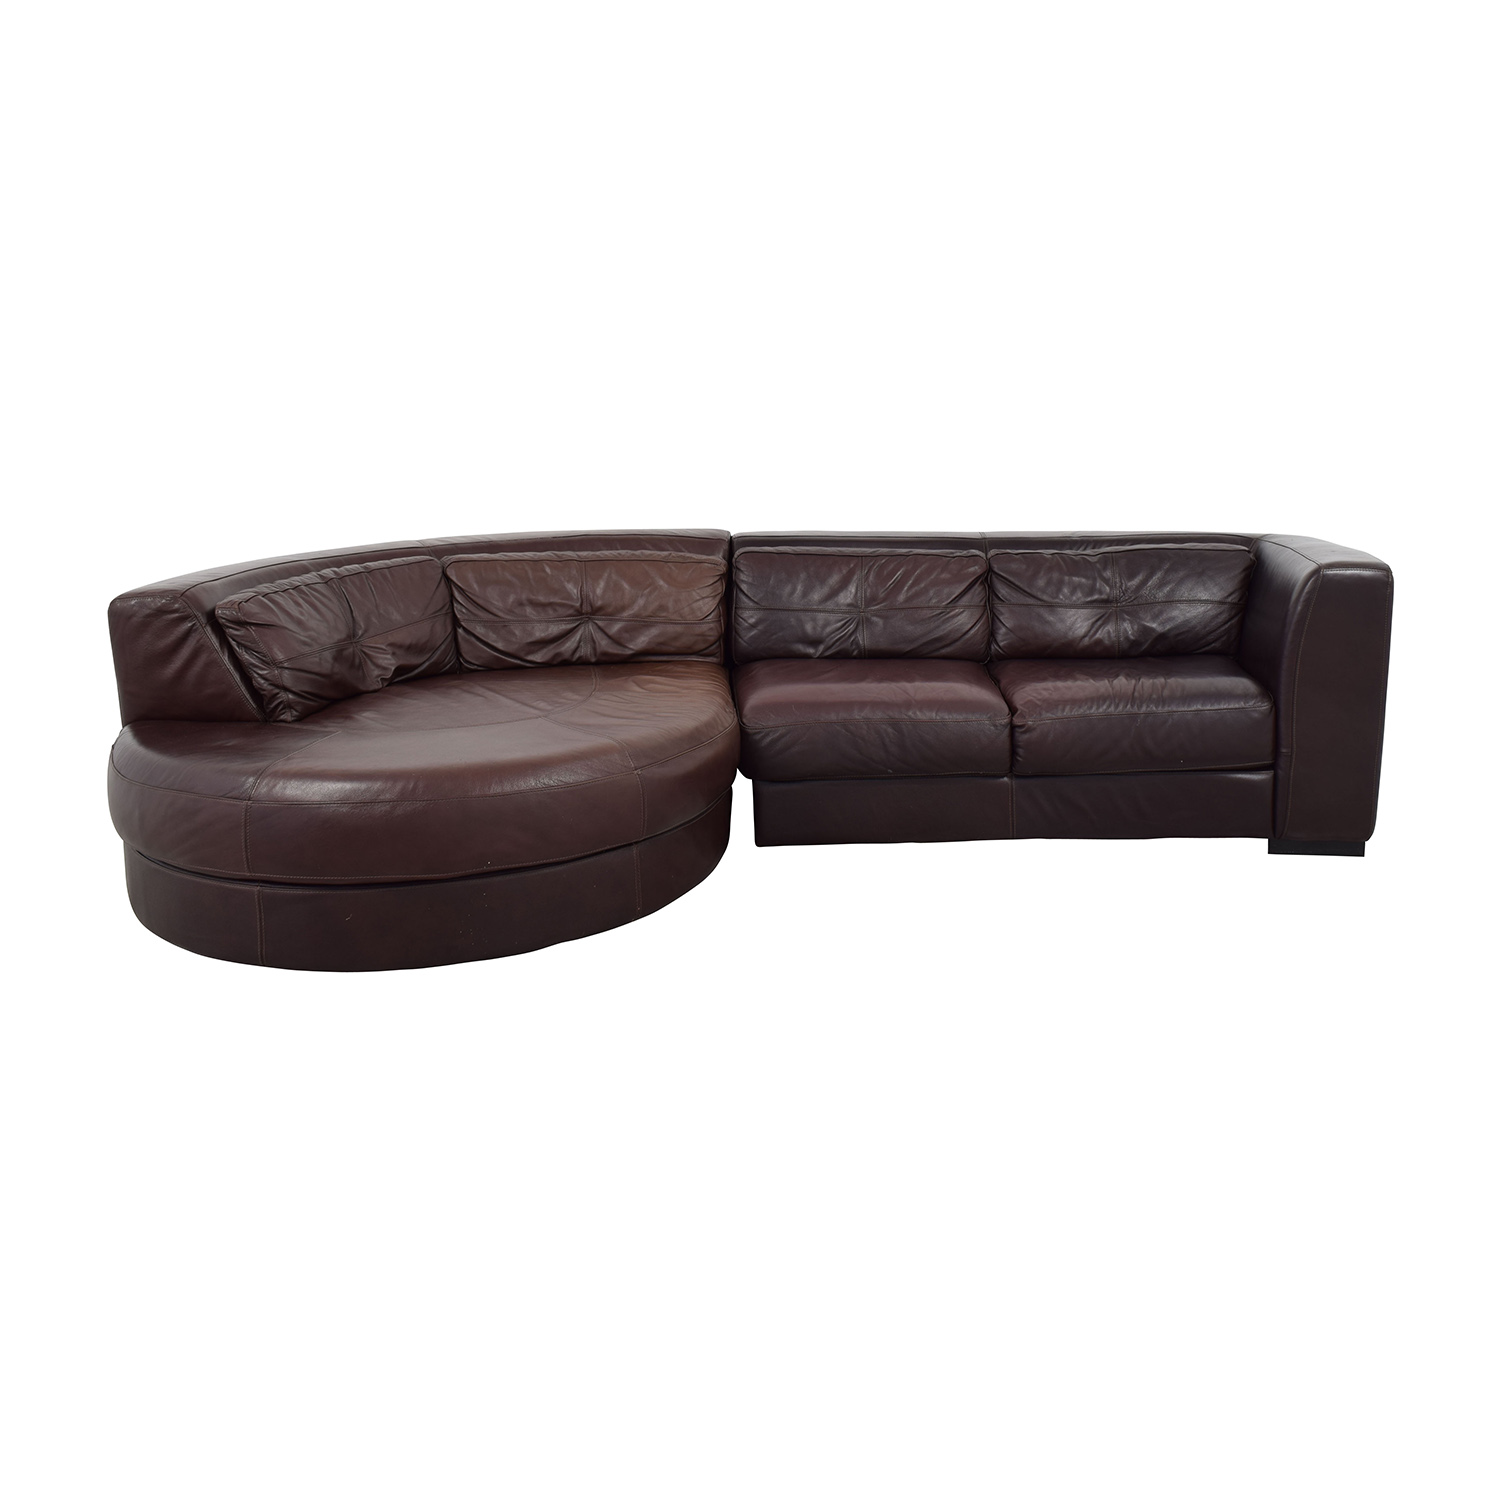 Chateau Dax Furniture Reviews: Chateau D'Ax Chateau D'Ax Leather Sectional With